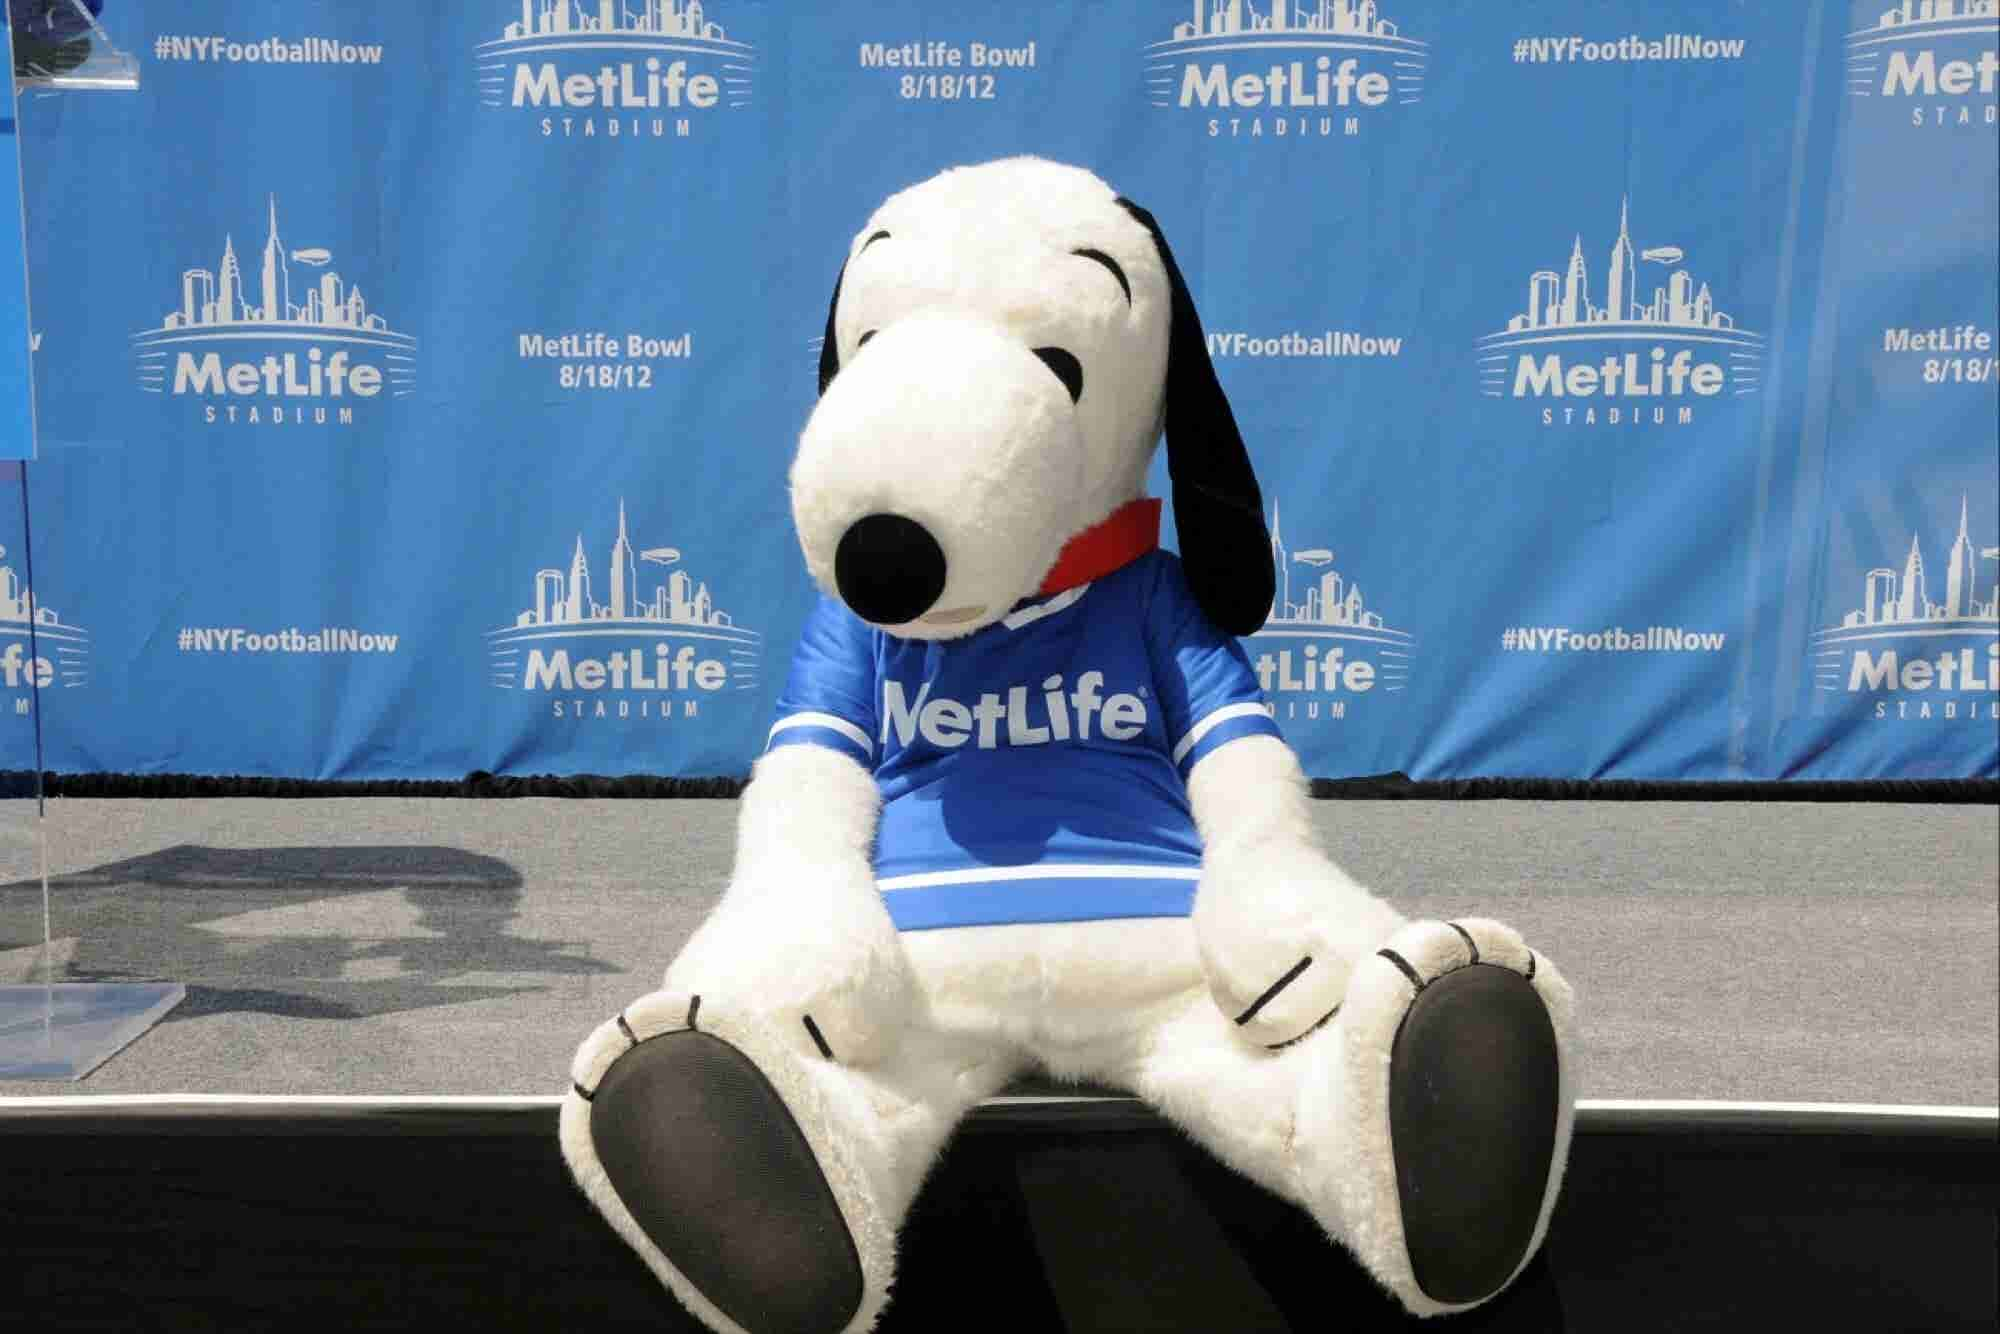 What a Bunch of Blockheads! Internet Outraged at MetLife Firing Snoopy.